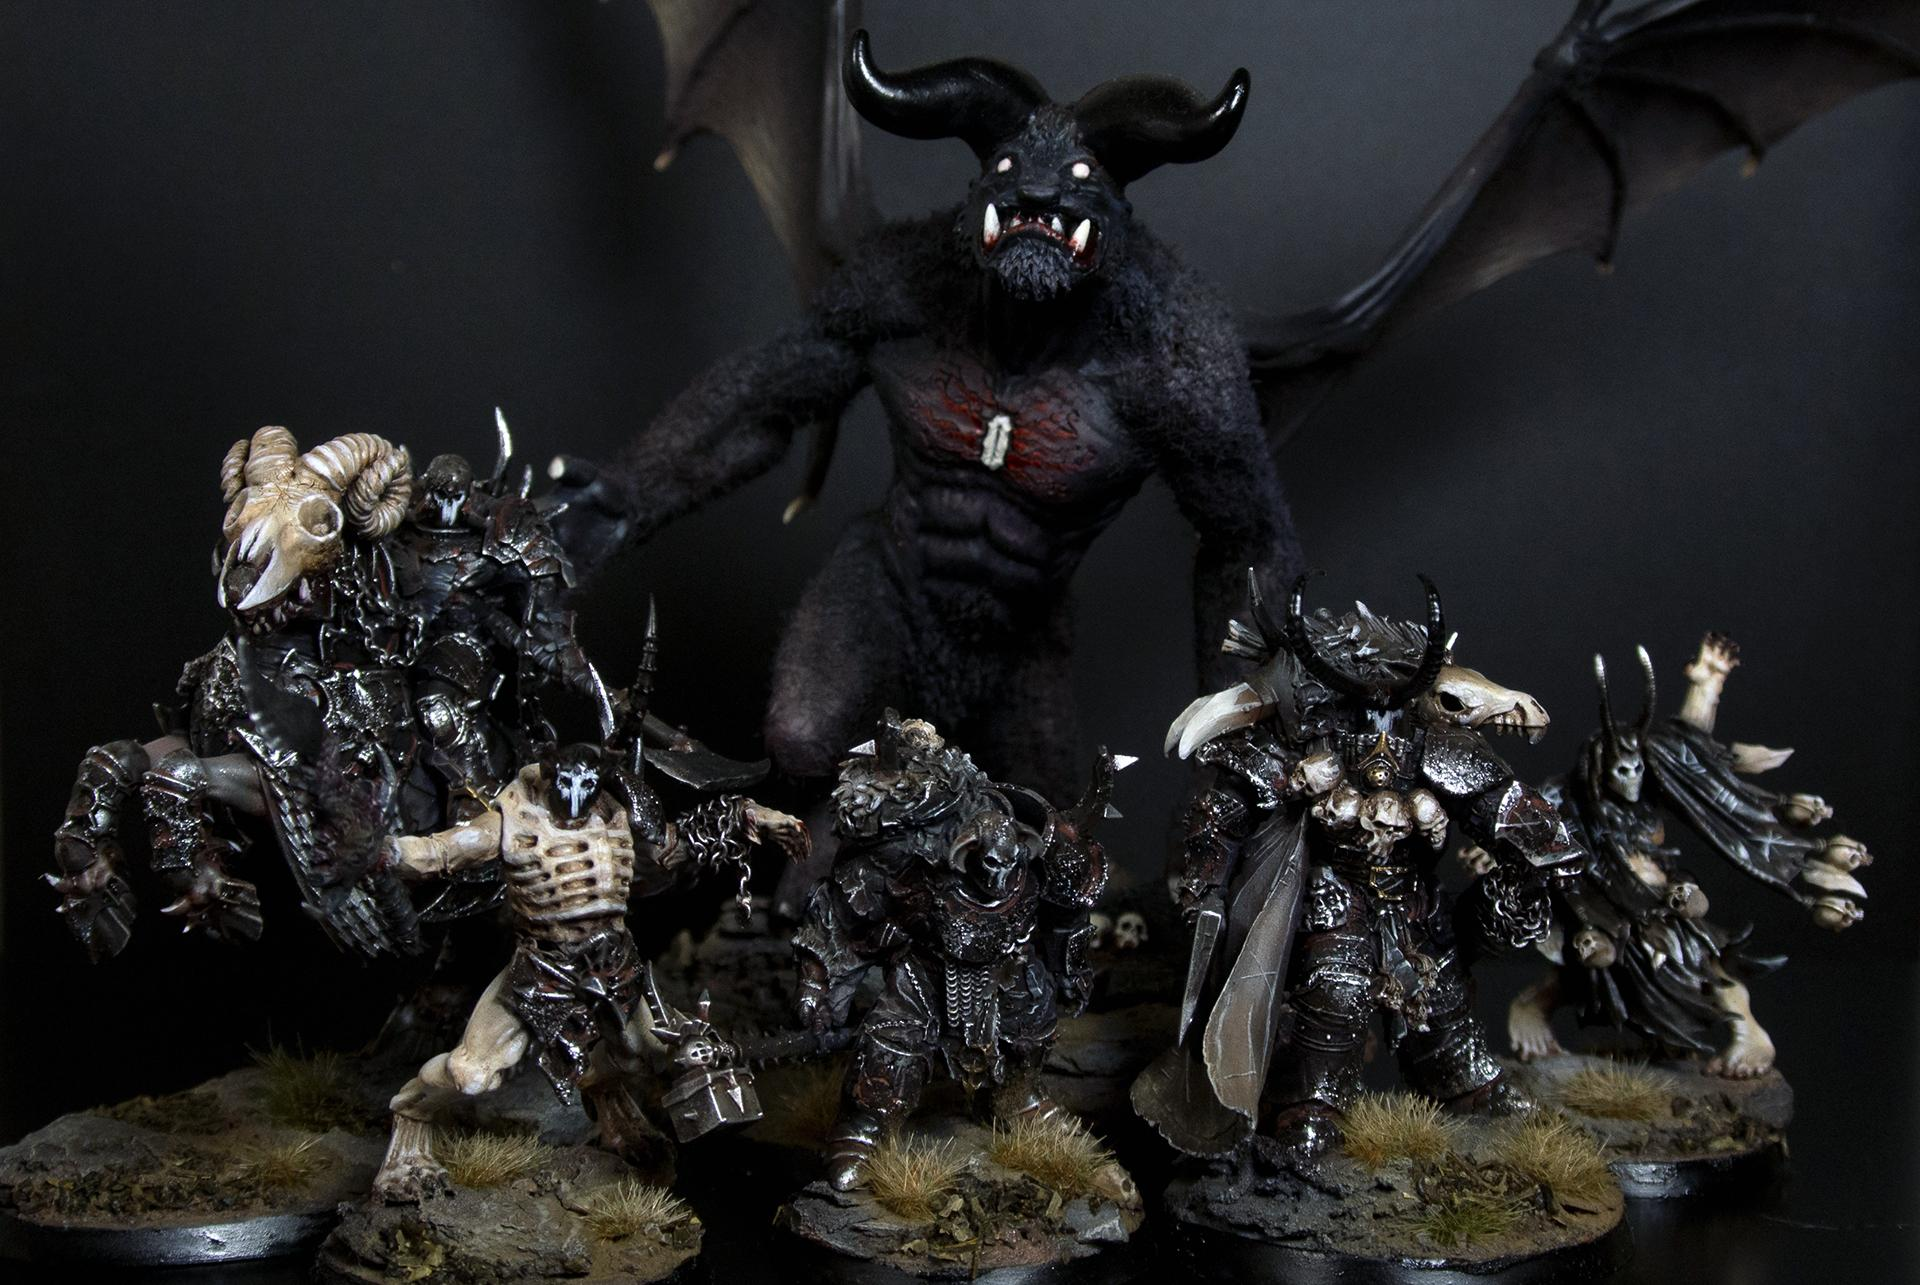 Age Of Sigmar, Chaos, Chosen, Conversion, Daemon Prince, Malal